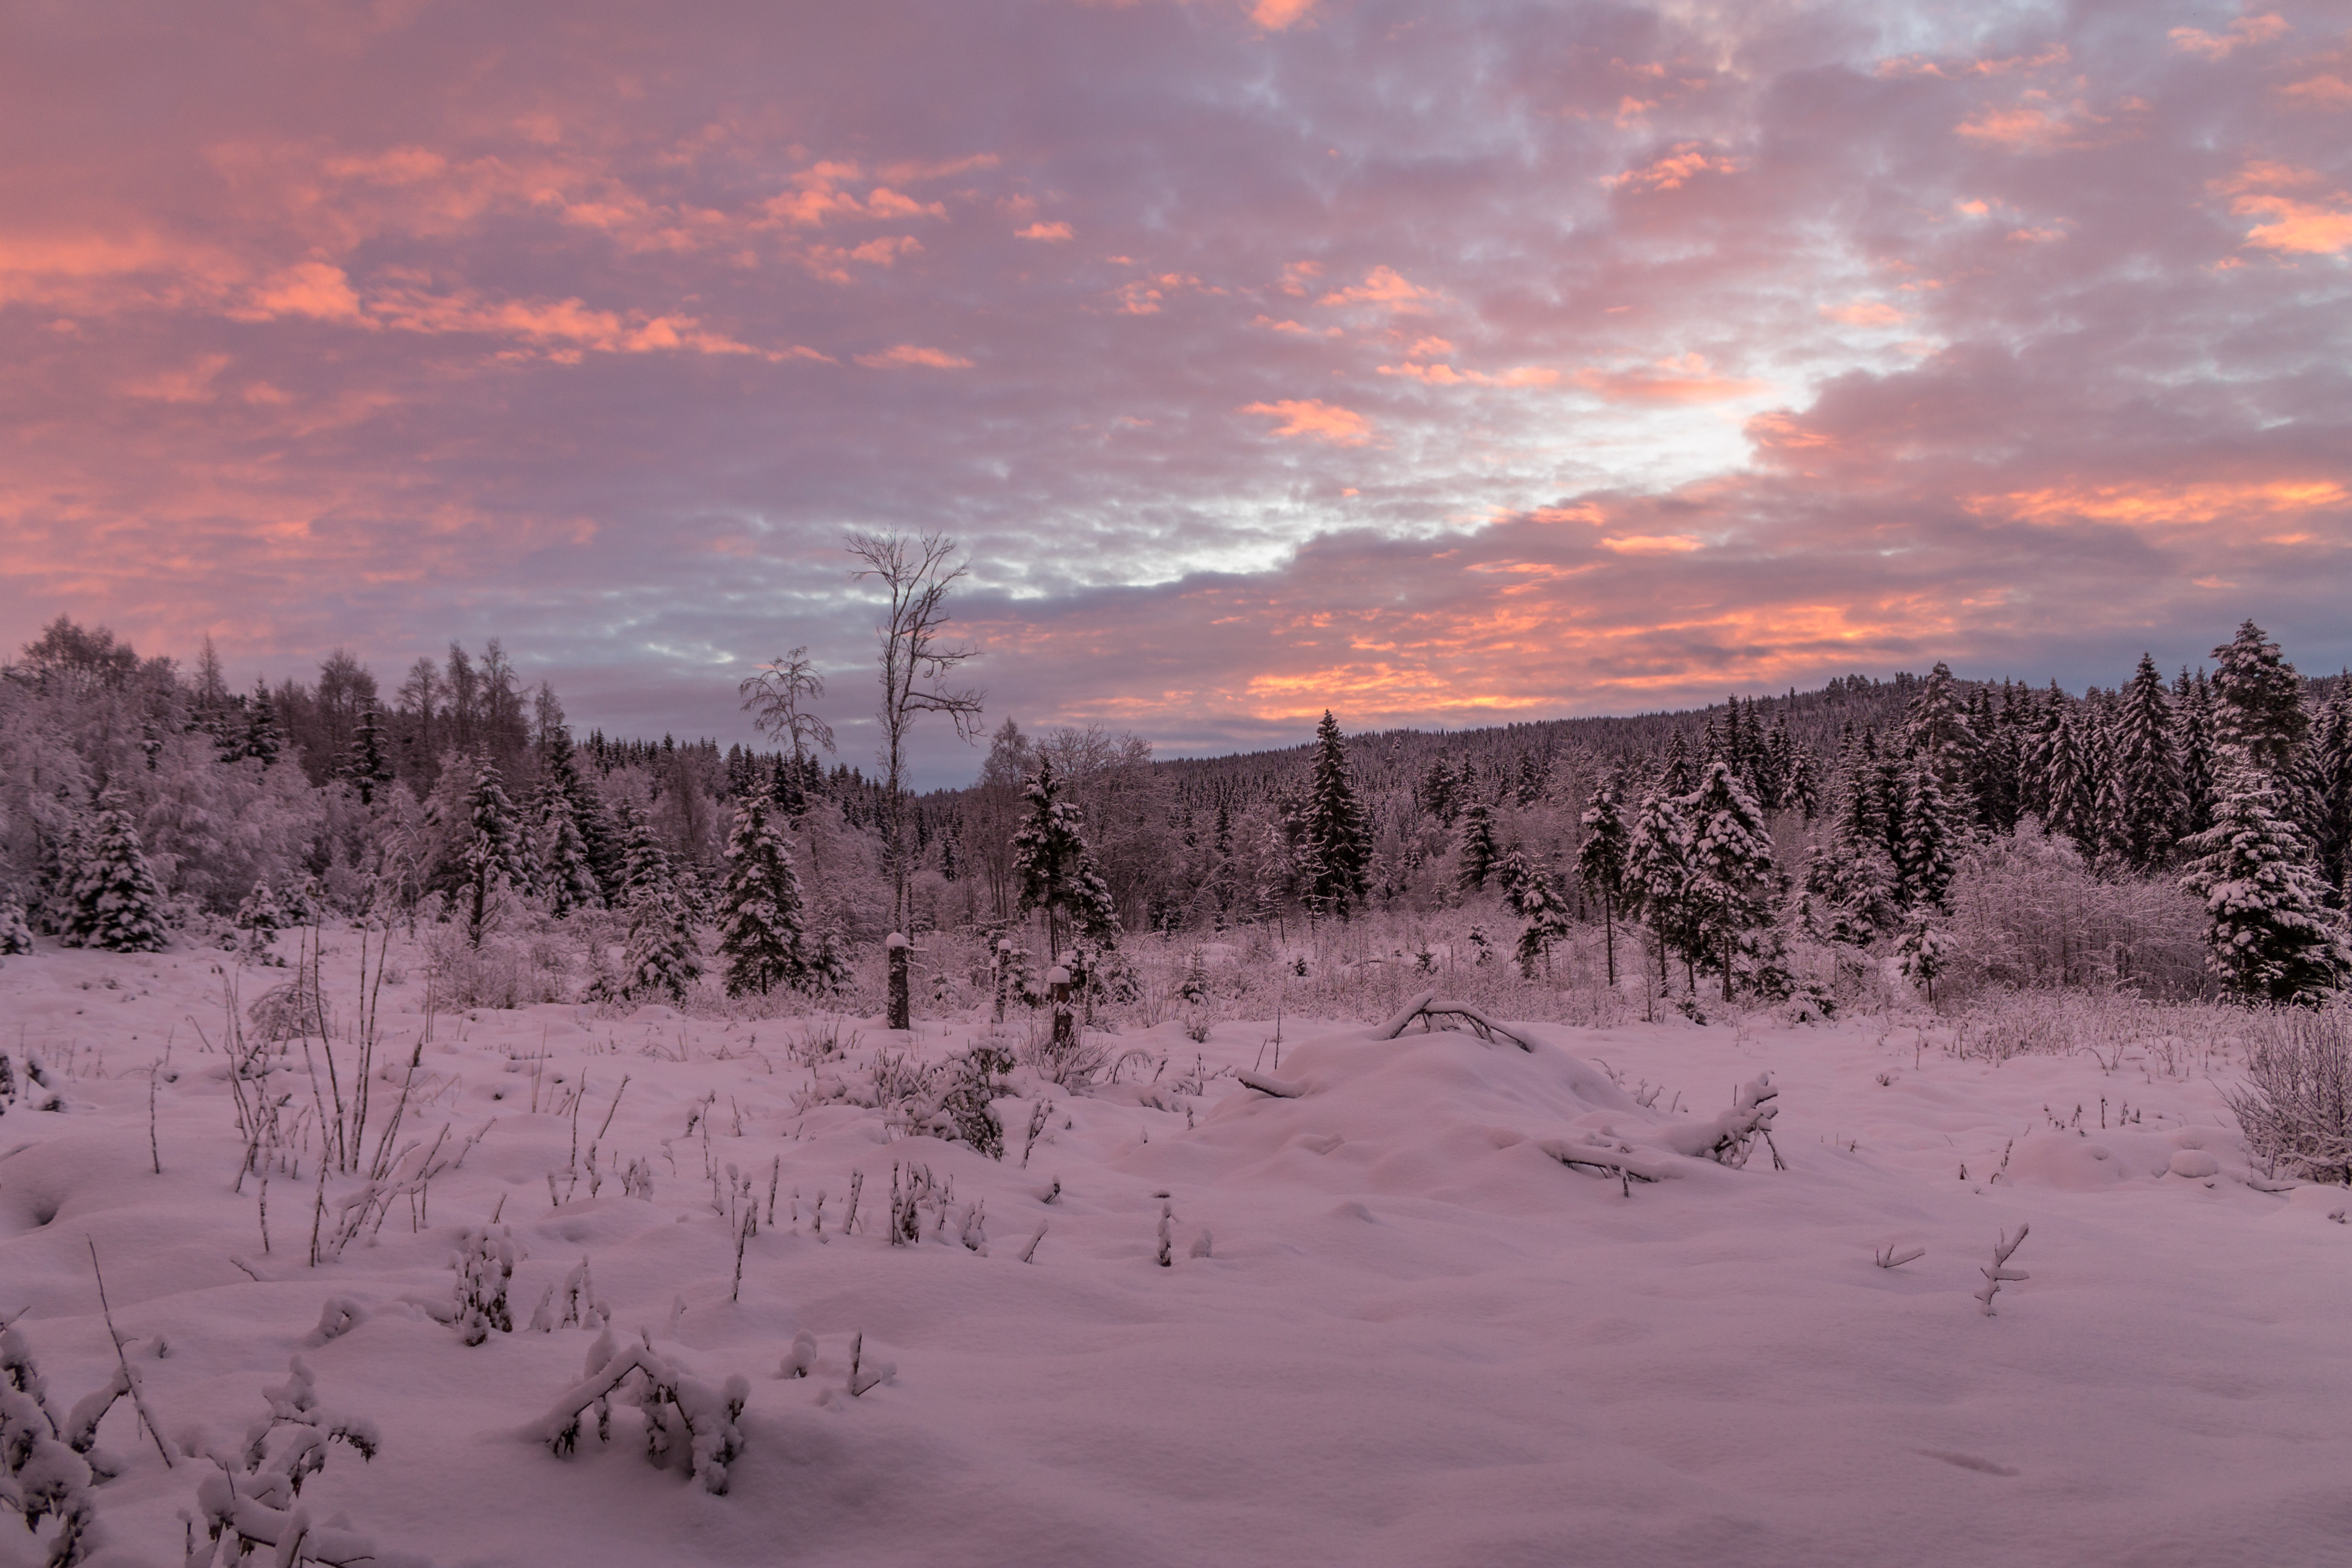 Winter Landscape in the Morning, Wood, Sky, Norway, November, HQ Photo